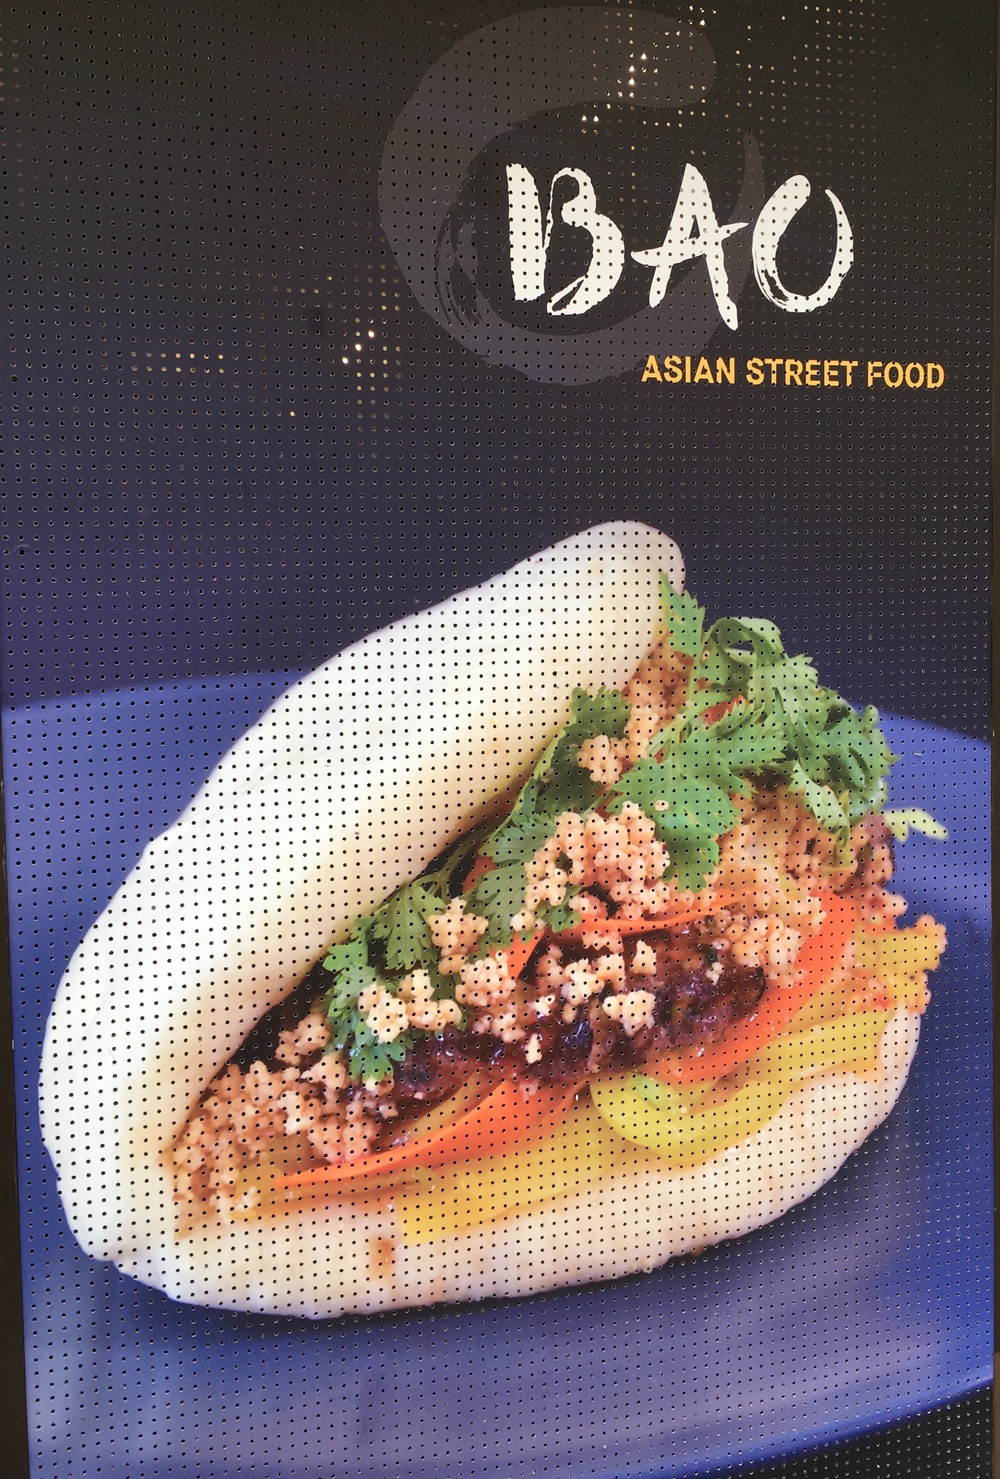 The advertisement that made me want to try  Mi Bao